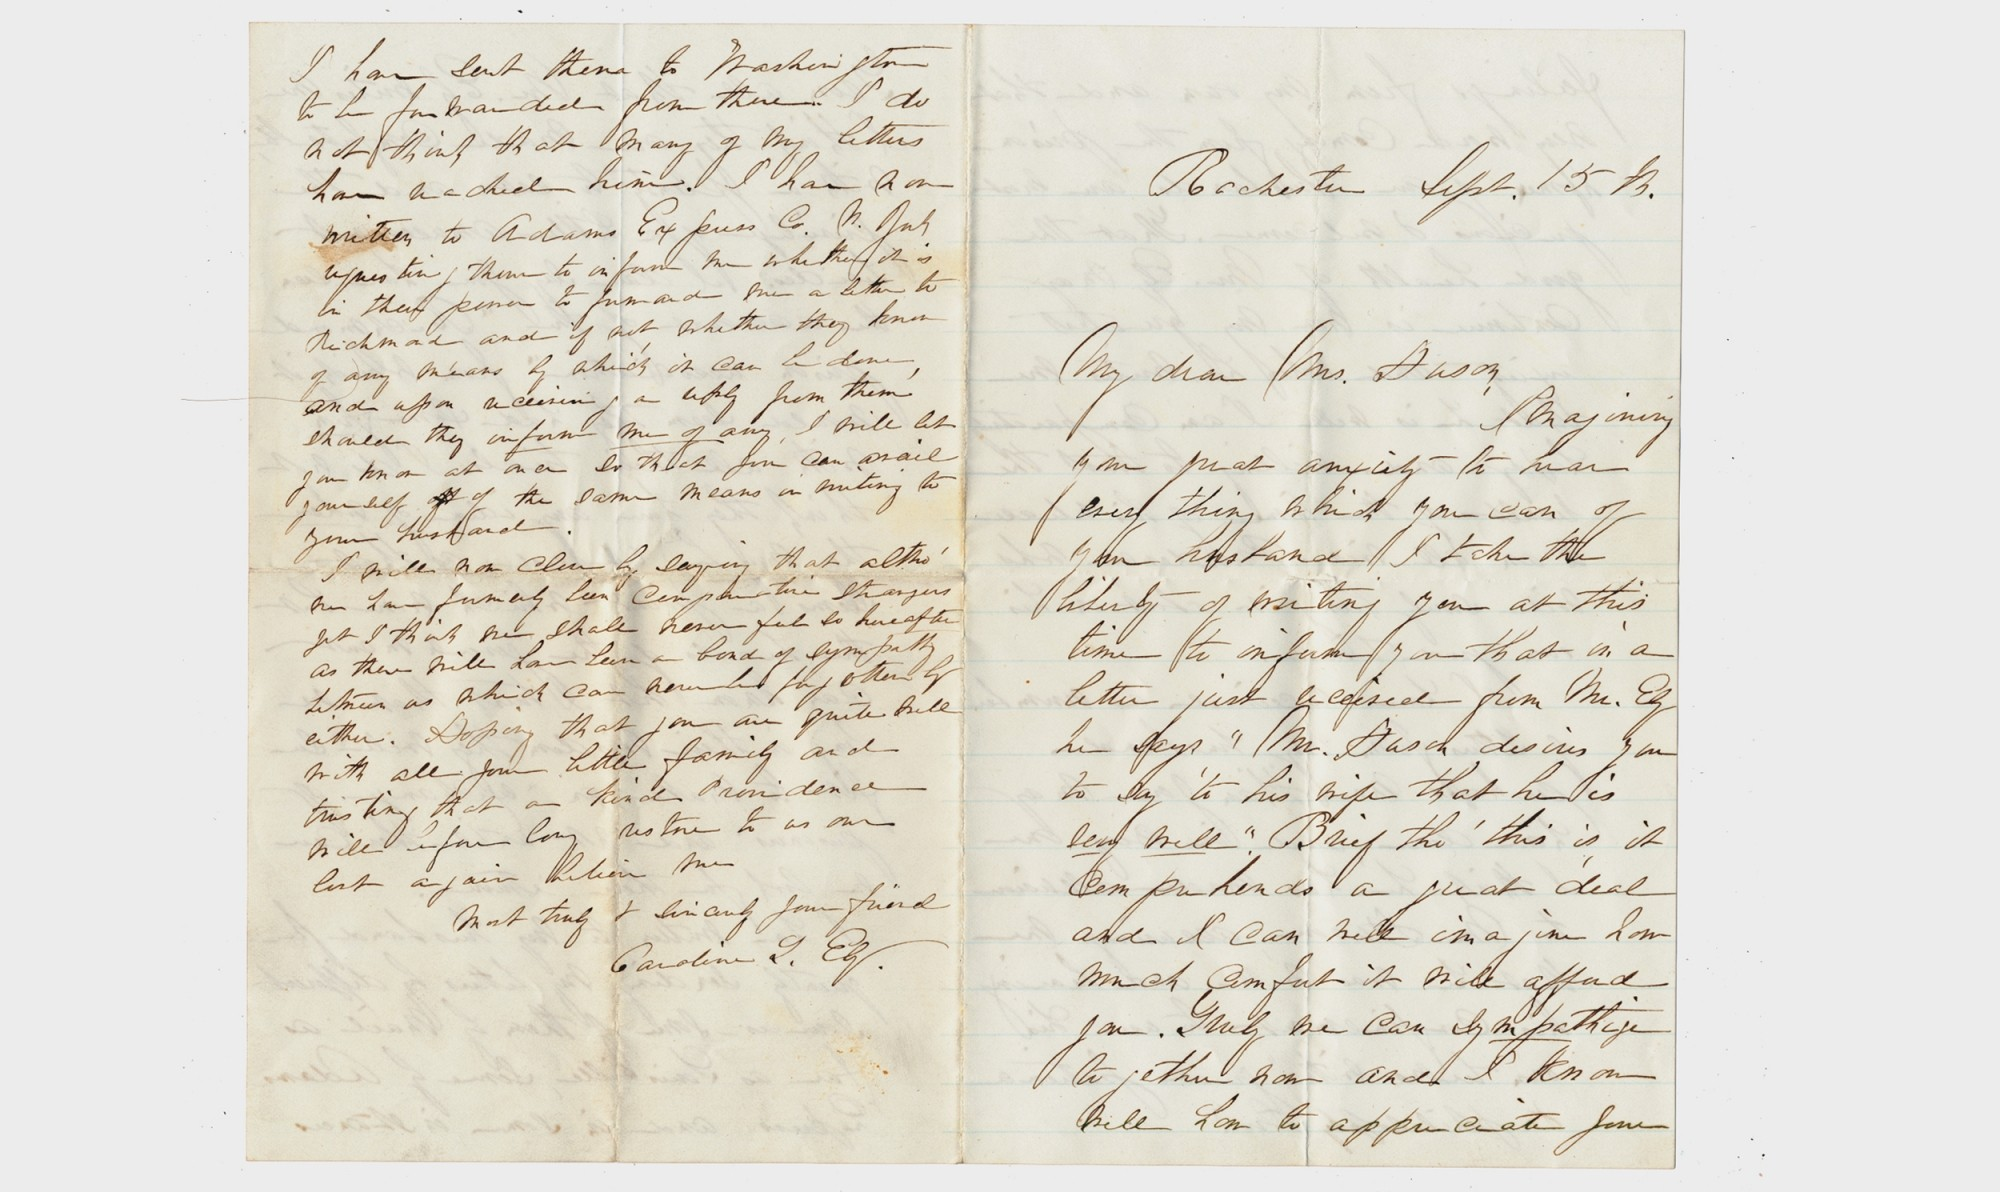 LETTER FROM MRS. ALFRED ELY TO MRS. CALVIN HUSON JR. – PAIR OF POLITICIANS CAPTURED AT 1ST BULL RUN [LIBBY PRISON]